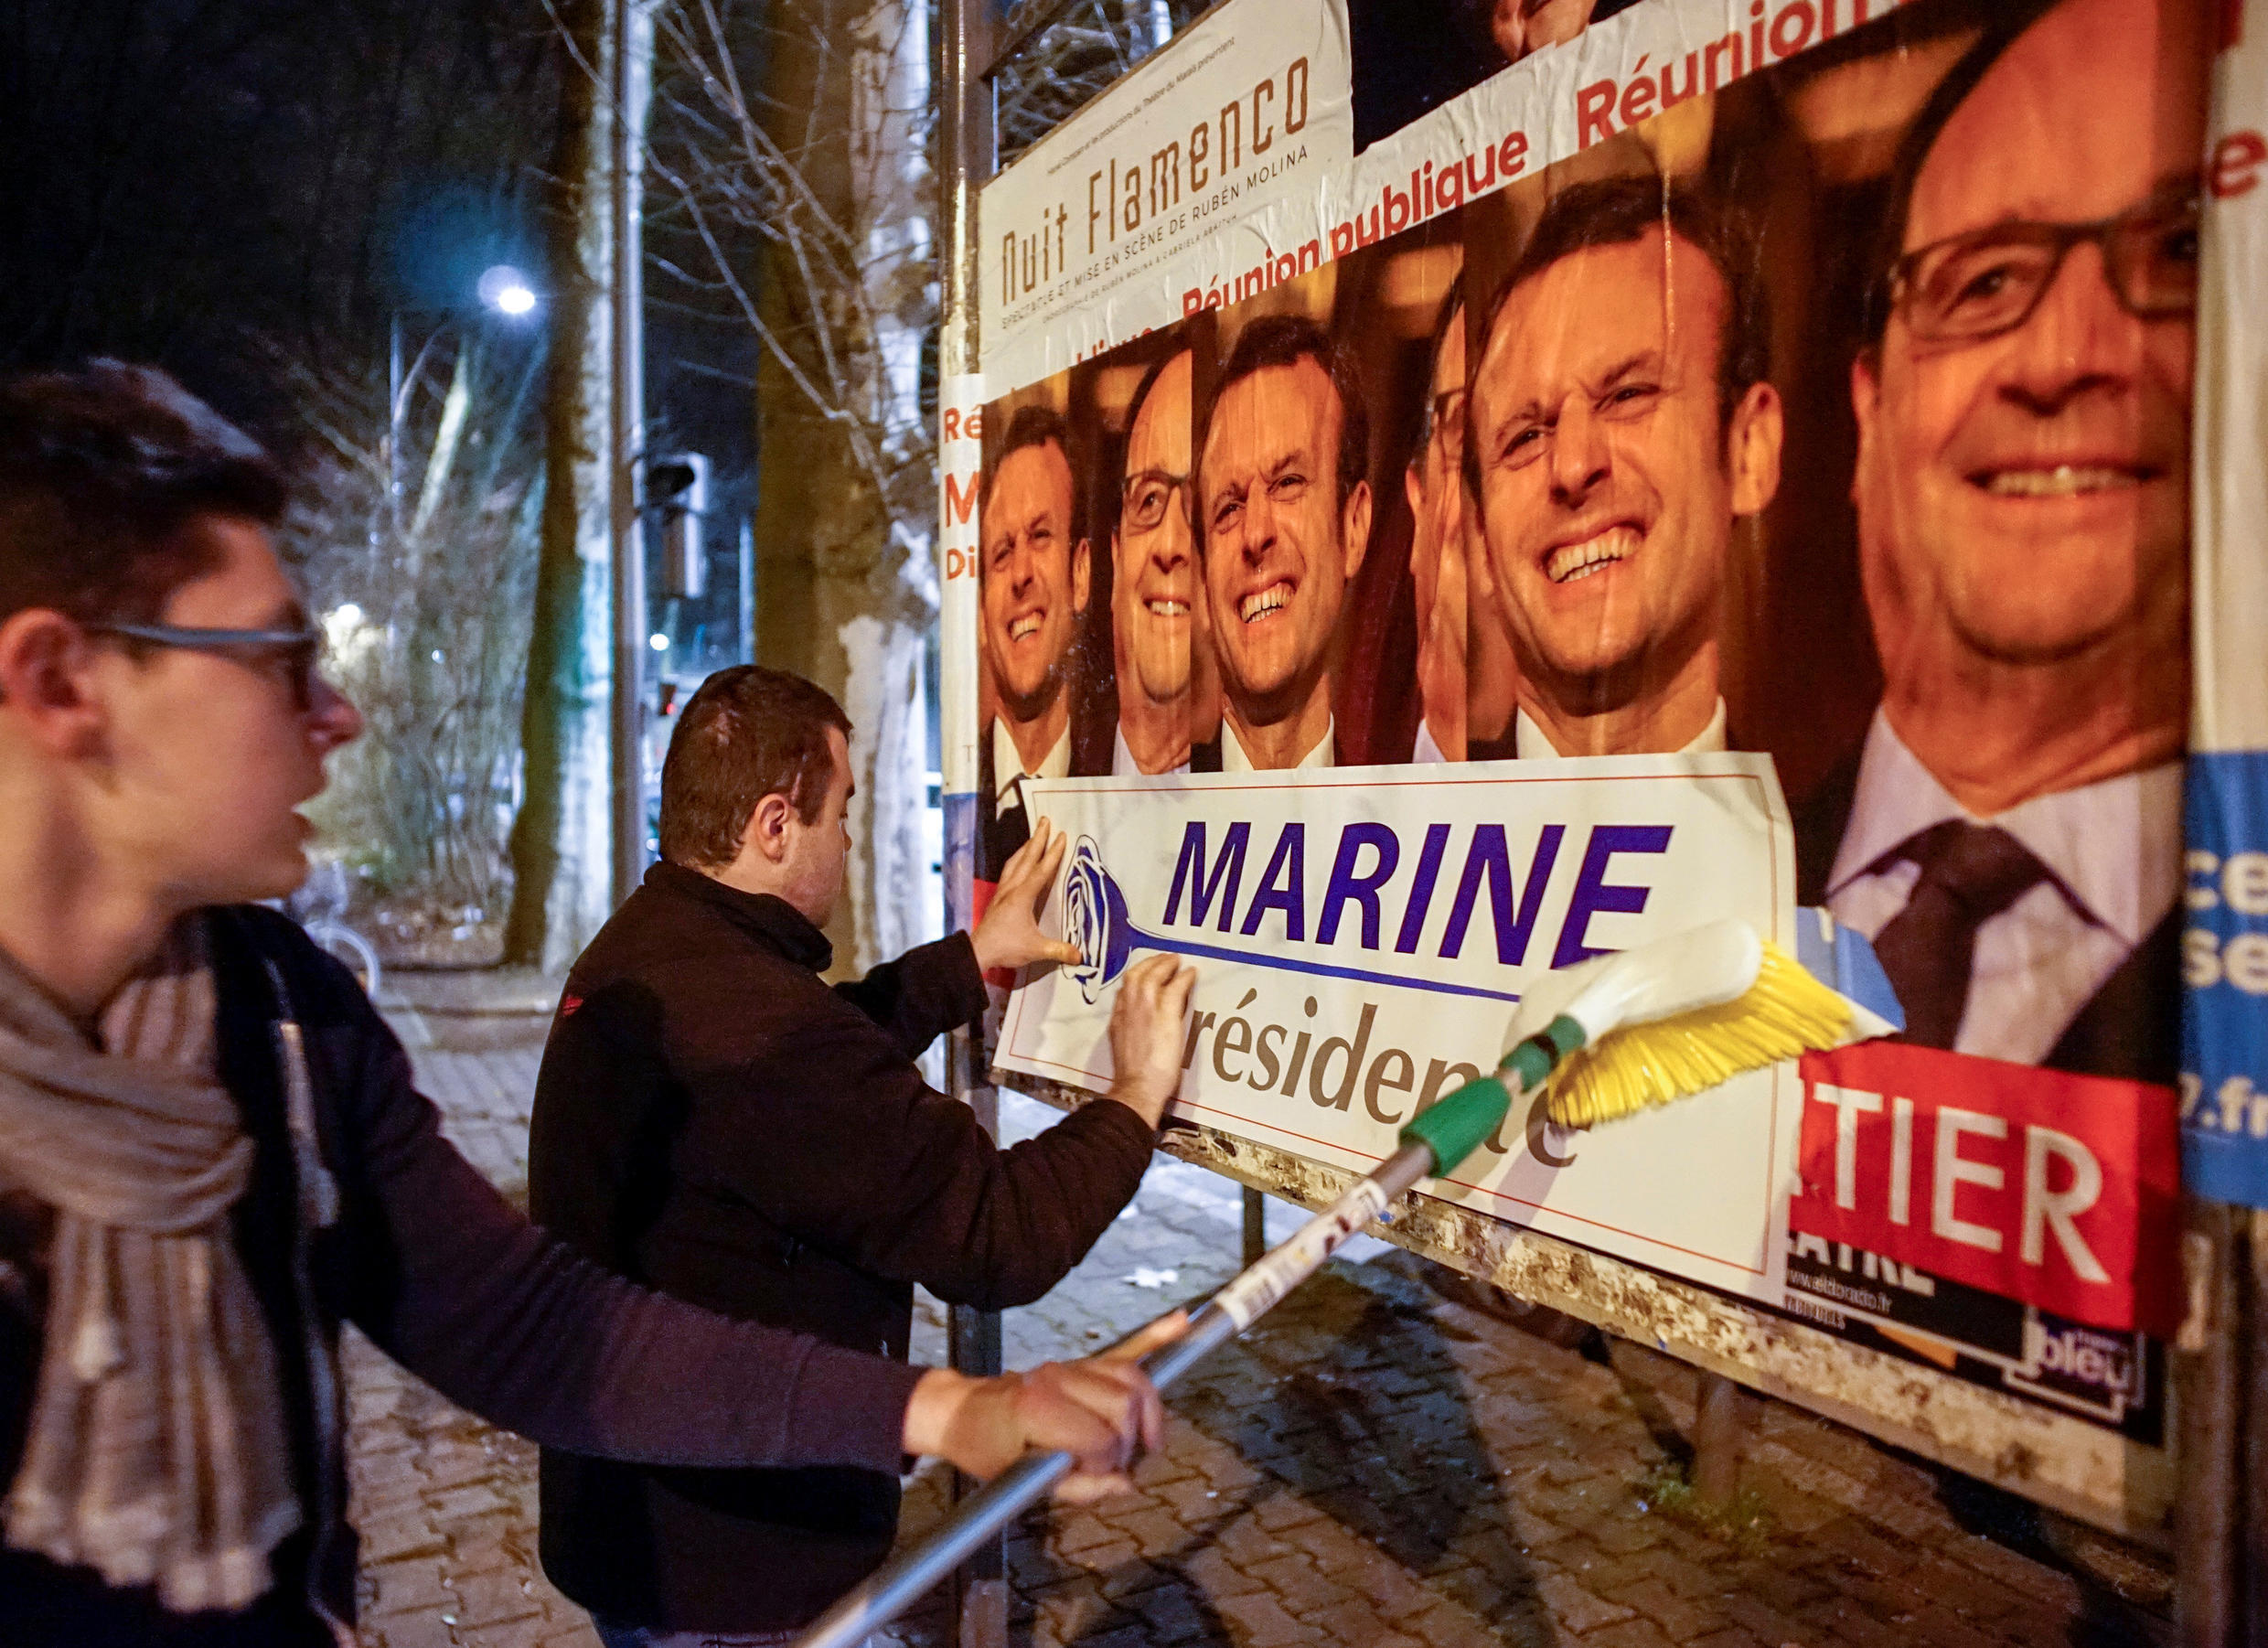 Members of the National Front youths put up posters of Marine Le Pen, French National Front (FN) political party leader and candidate for the French 2017 presidential election, ahead of a 2-day FN political rally to launch the presidential campaign in Lyon